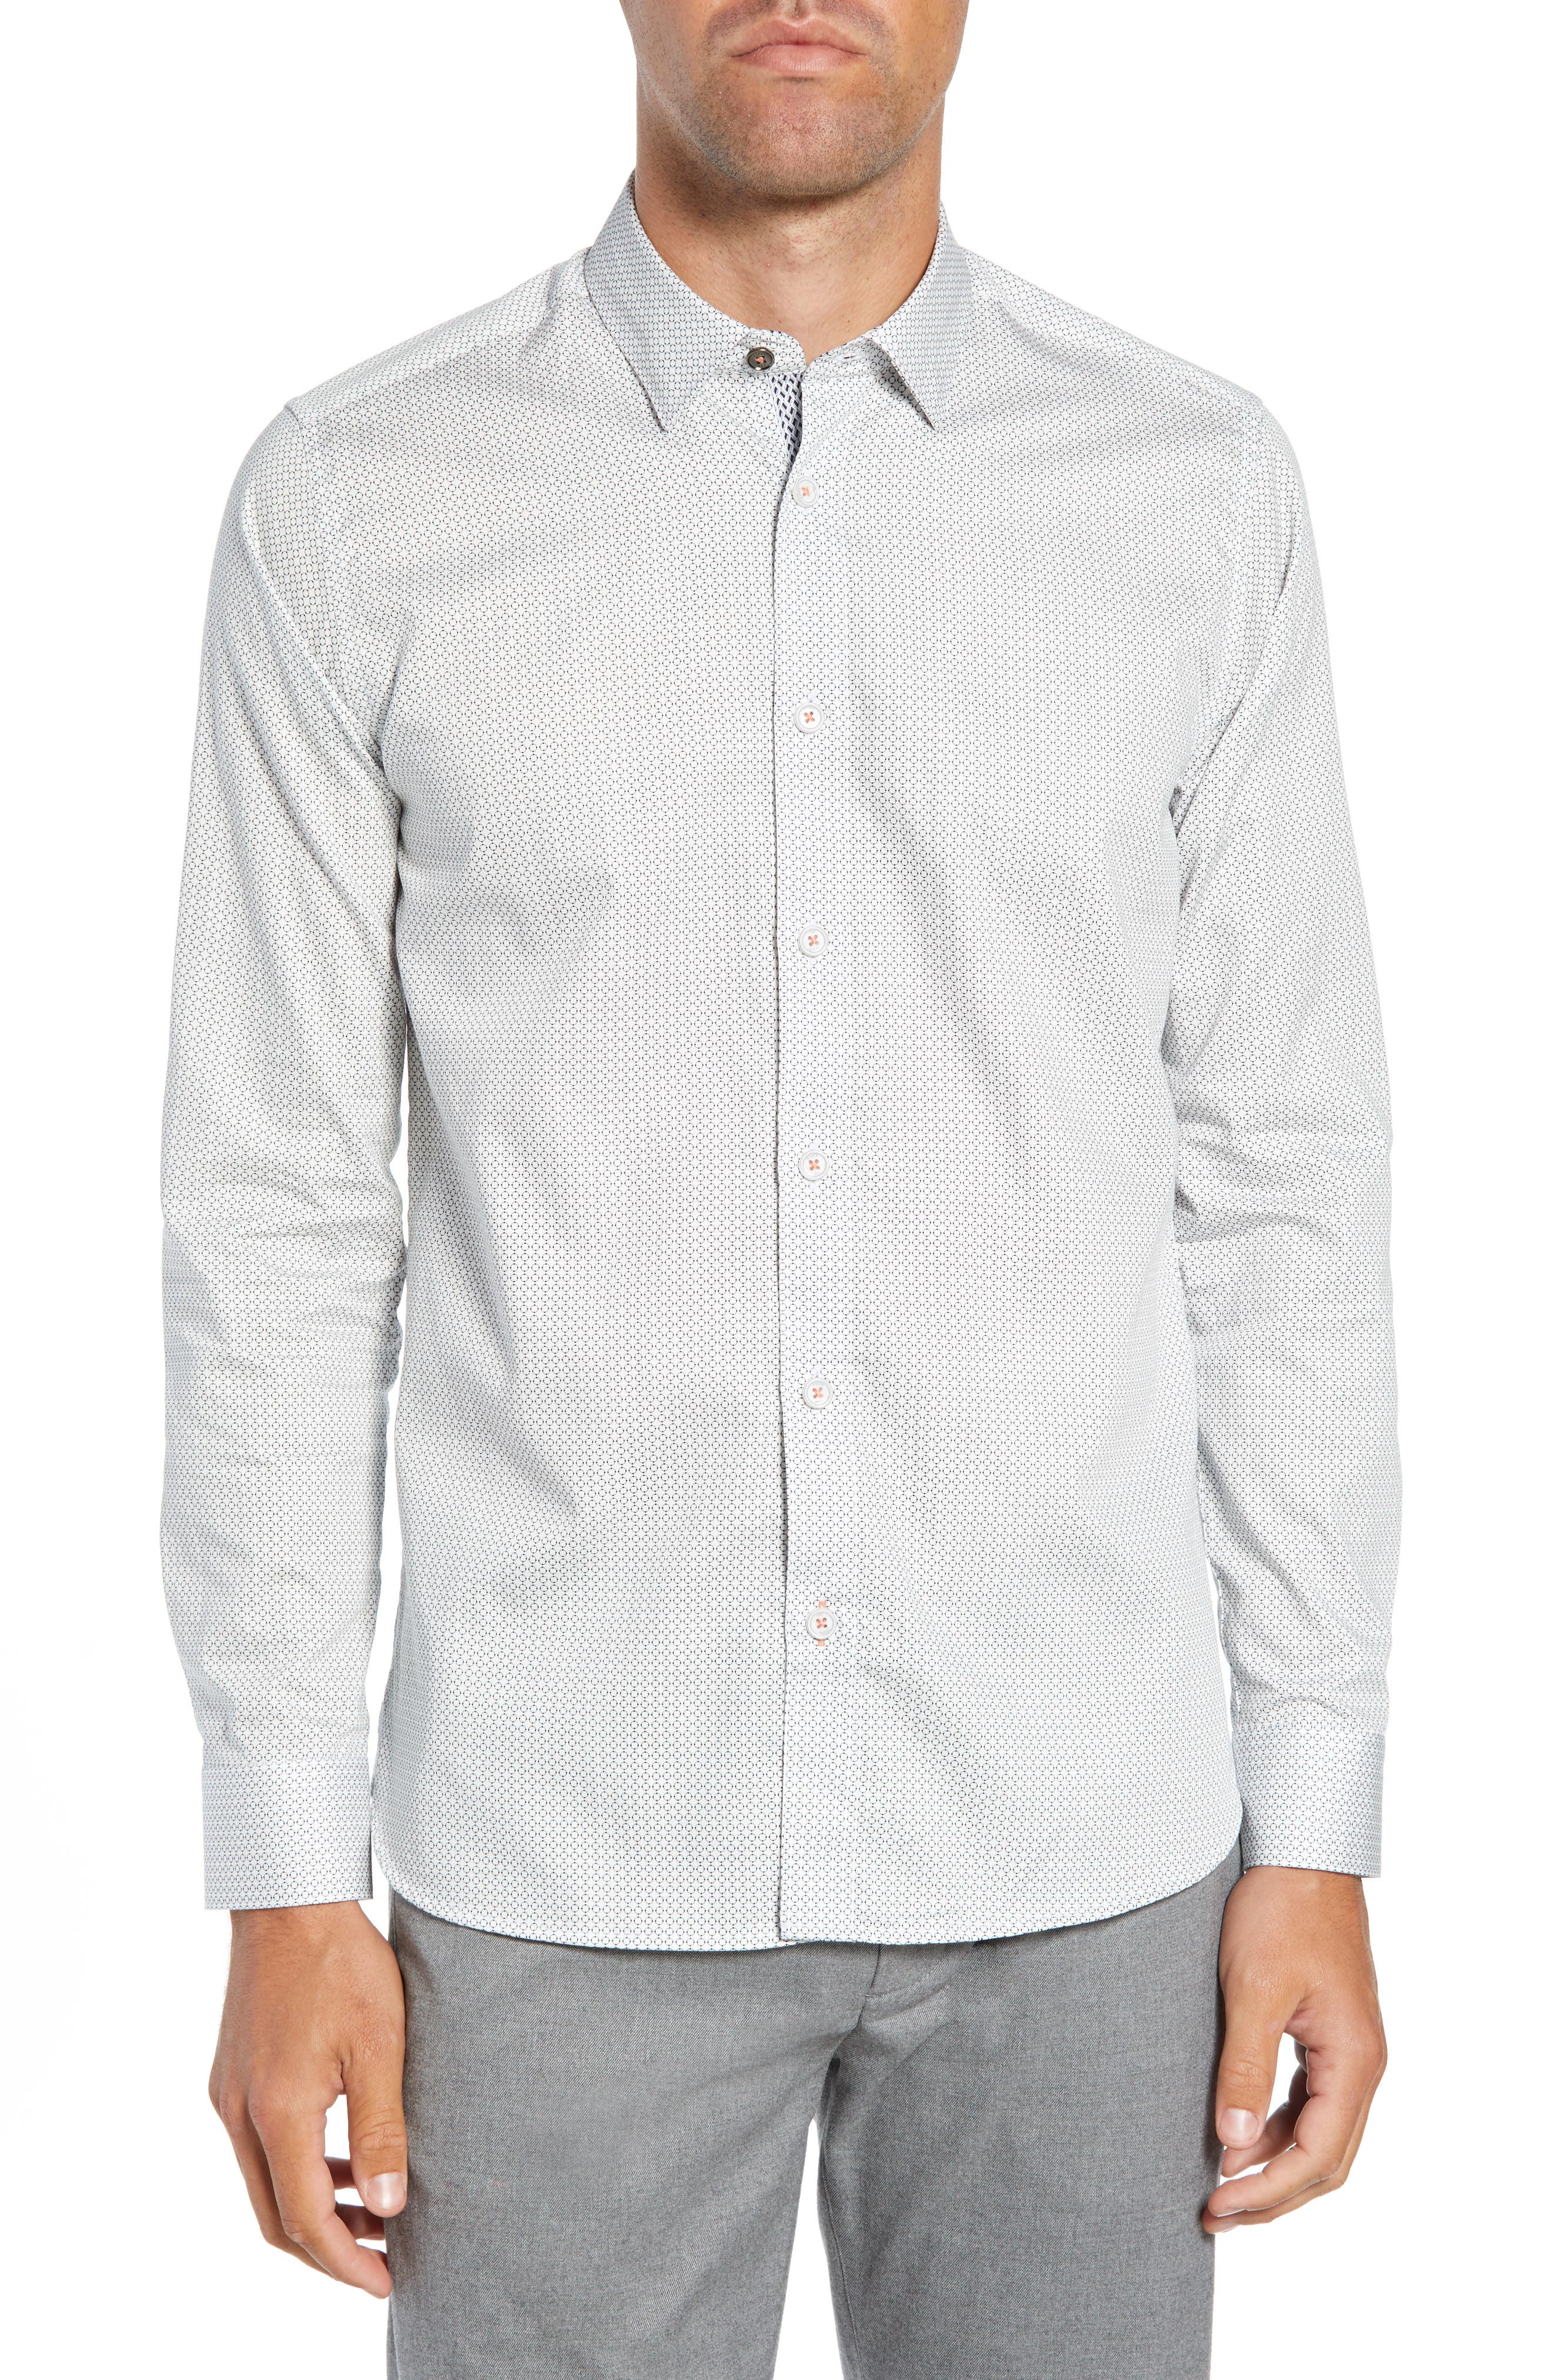 TED BAKER Jenkins Geometric Print Regular Fit Button-Down Shirt in White